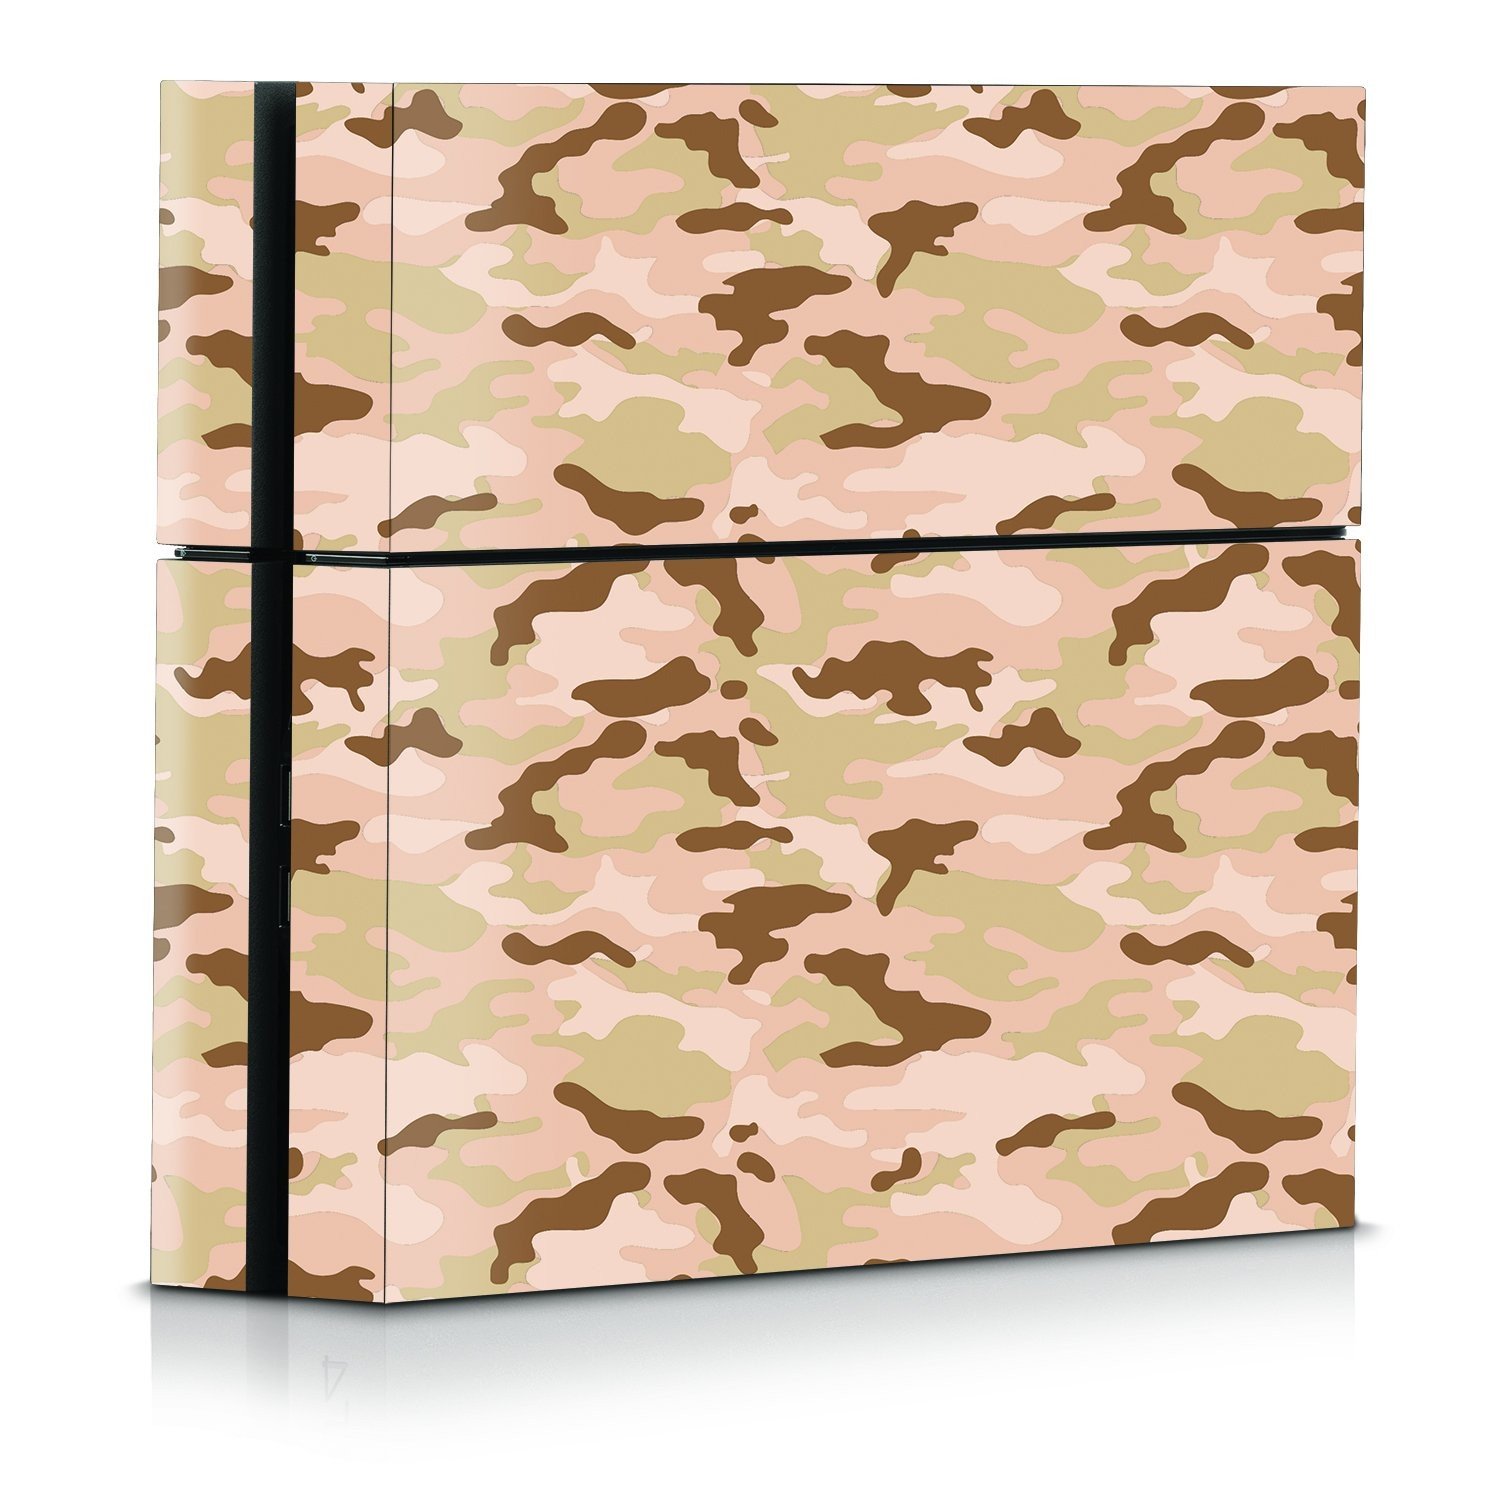 Officially Licensed Console Skin - Desert Camo